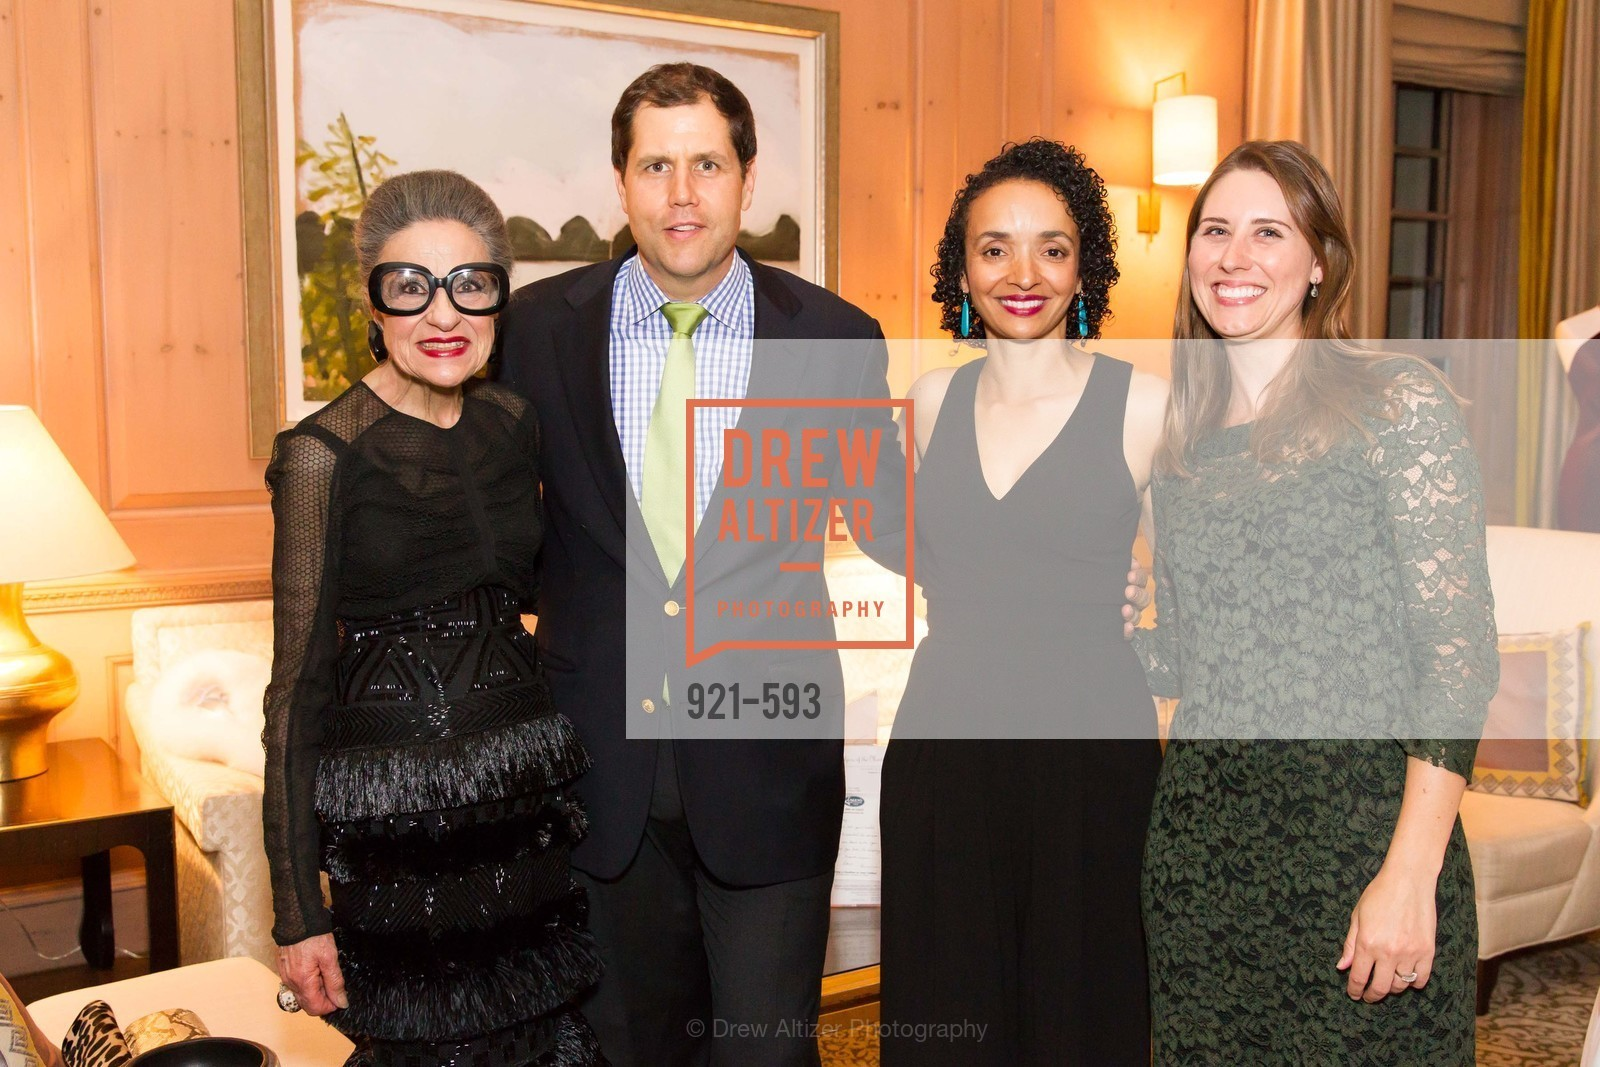 Joy Venturini Bianchi, Drew Altizer, Camille Hayes, Jami Ying, COUTURE FOR A CAUSE, US, October 5th, 2014,Drew Altizer, Drew Altizer Photography, full-service agency, private events, San Francisco photographer, photographer california